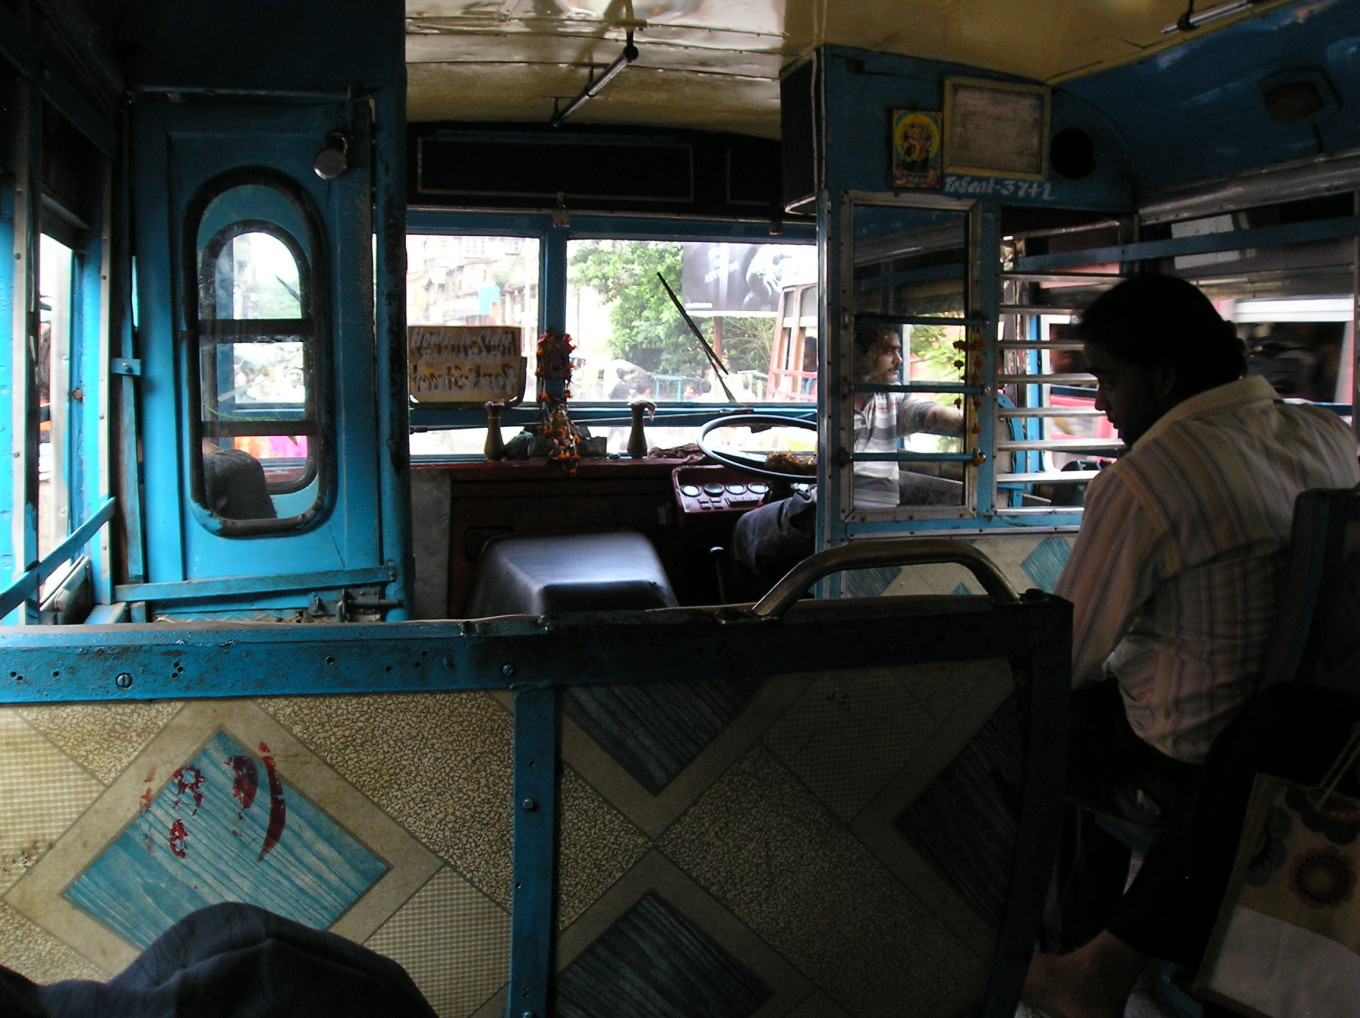 Bus - Calcutta